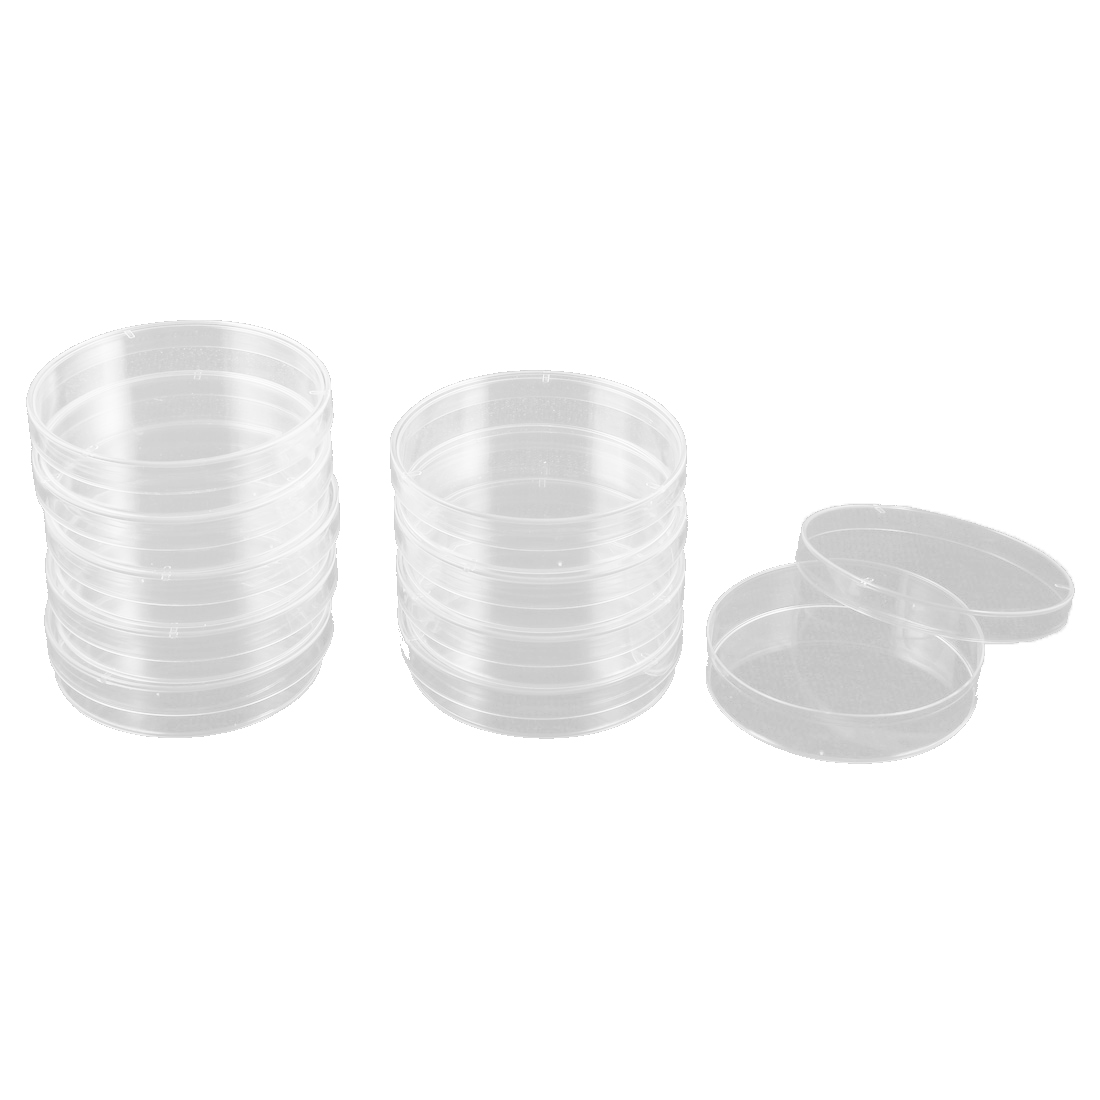 Labor Replacement Part 70mm Diameter Clear Plastic Cell Culture Dish 10 Pcs